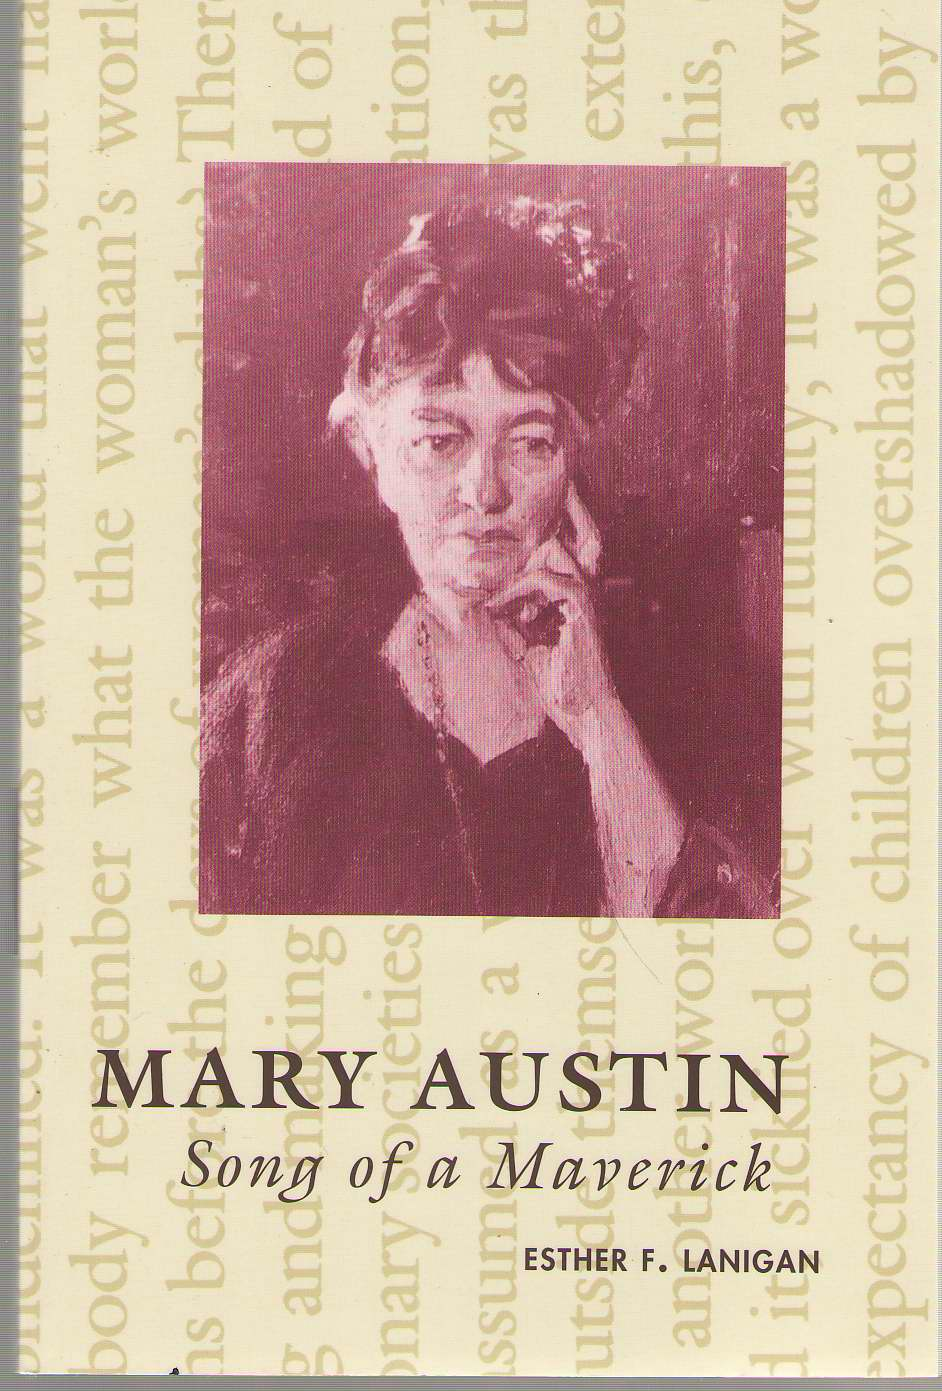 Image for Mary Austin Song of a Maverick